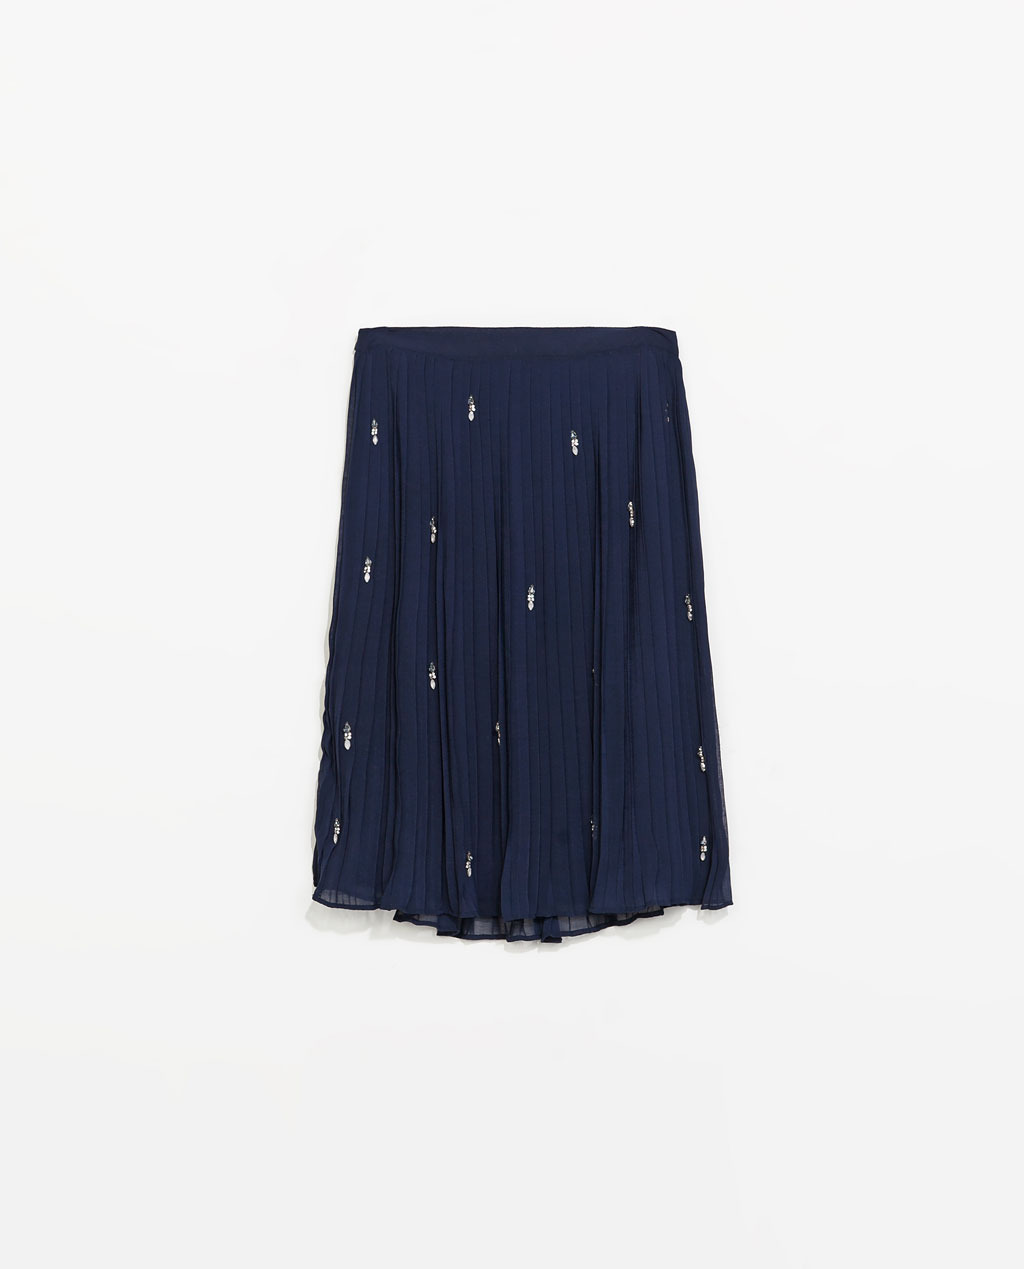 Beaded Fine Pleat Skirt - length: below the knee; pattern: plain; fit: loose/voluminous; style: pleated; waist: mid/regular rise; secondary colour: white; predominant colour: navy; occasions: casual, evening, work, creative work; fibres: polyester/polyamide - 100%; texture group: sheer fabrics/chiffon/organza etc.; pattern type: fabric; embellishment: beading; season: s/s 2014; wardrobe: highlight; embellishment location: pattern